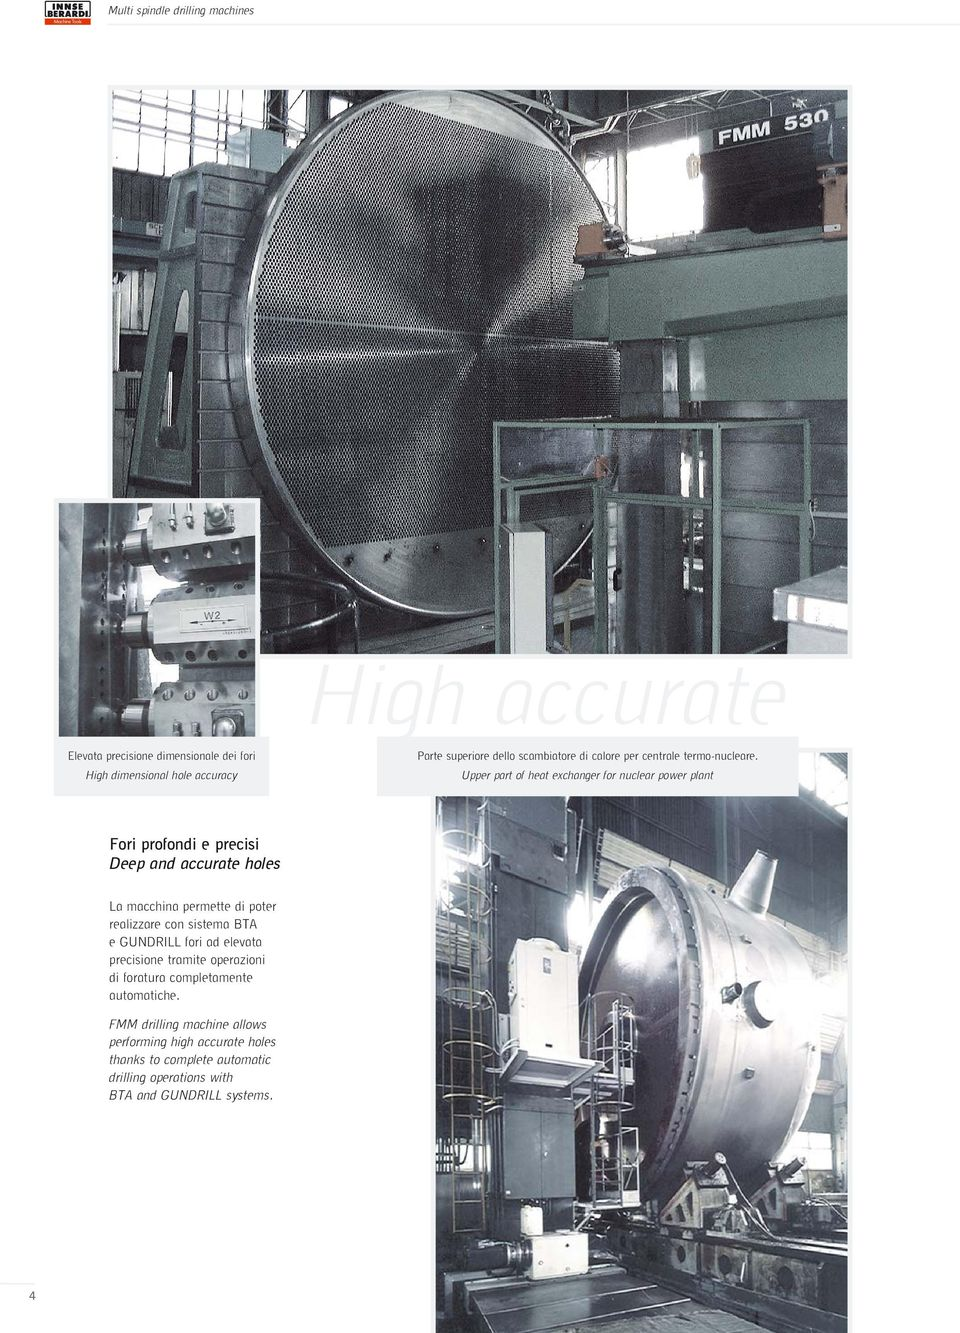 Upper part of heat exchanger for nuclear power plant Fori profondi e precisi Deep and accurate holes La macchina permette di poter realizzare con